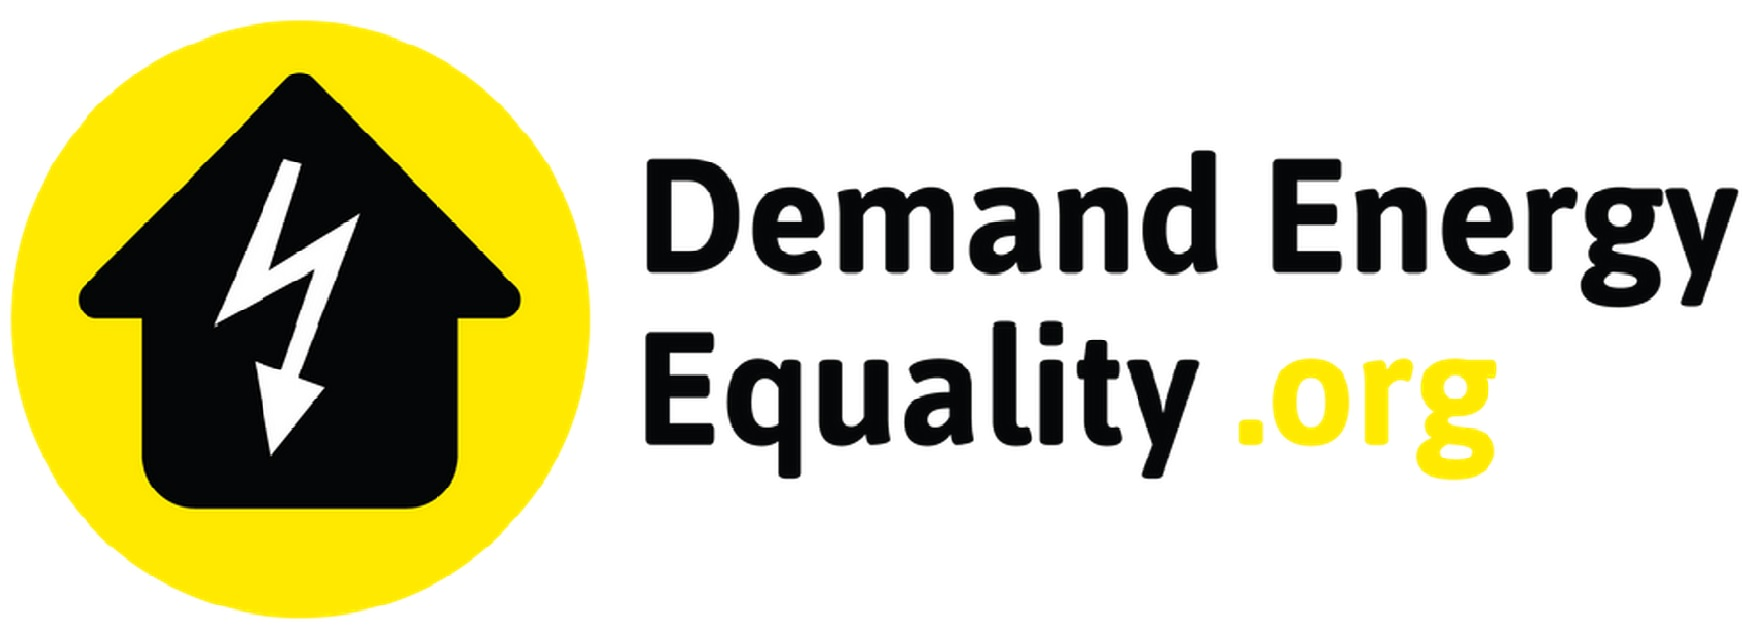 Demand Energy Equality - logo